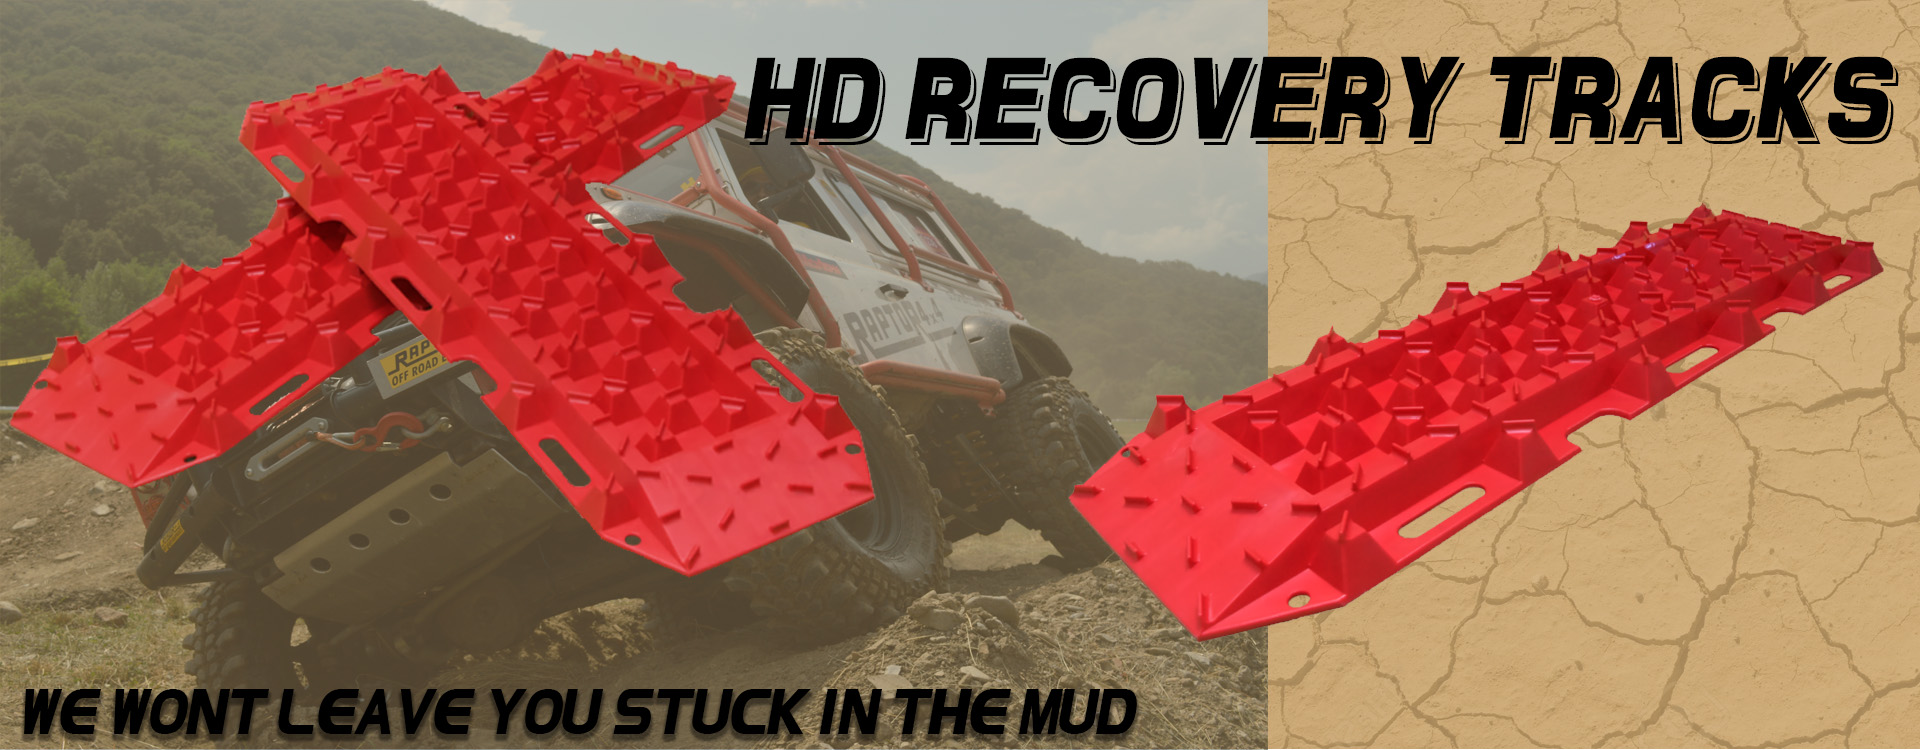 hdrecovery